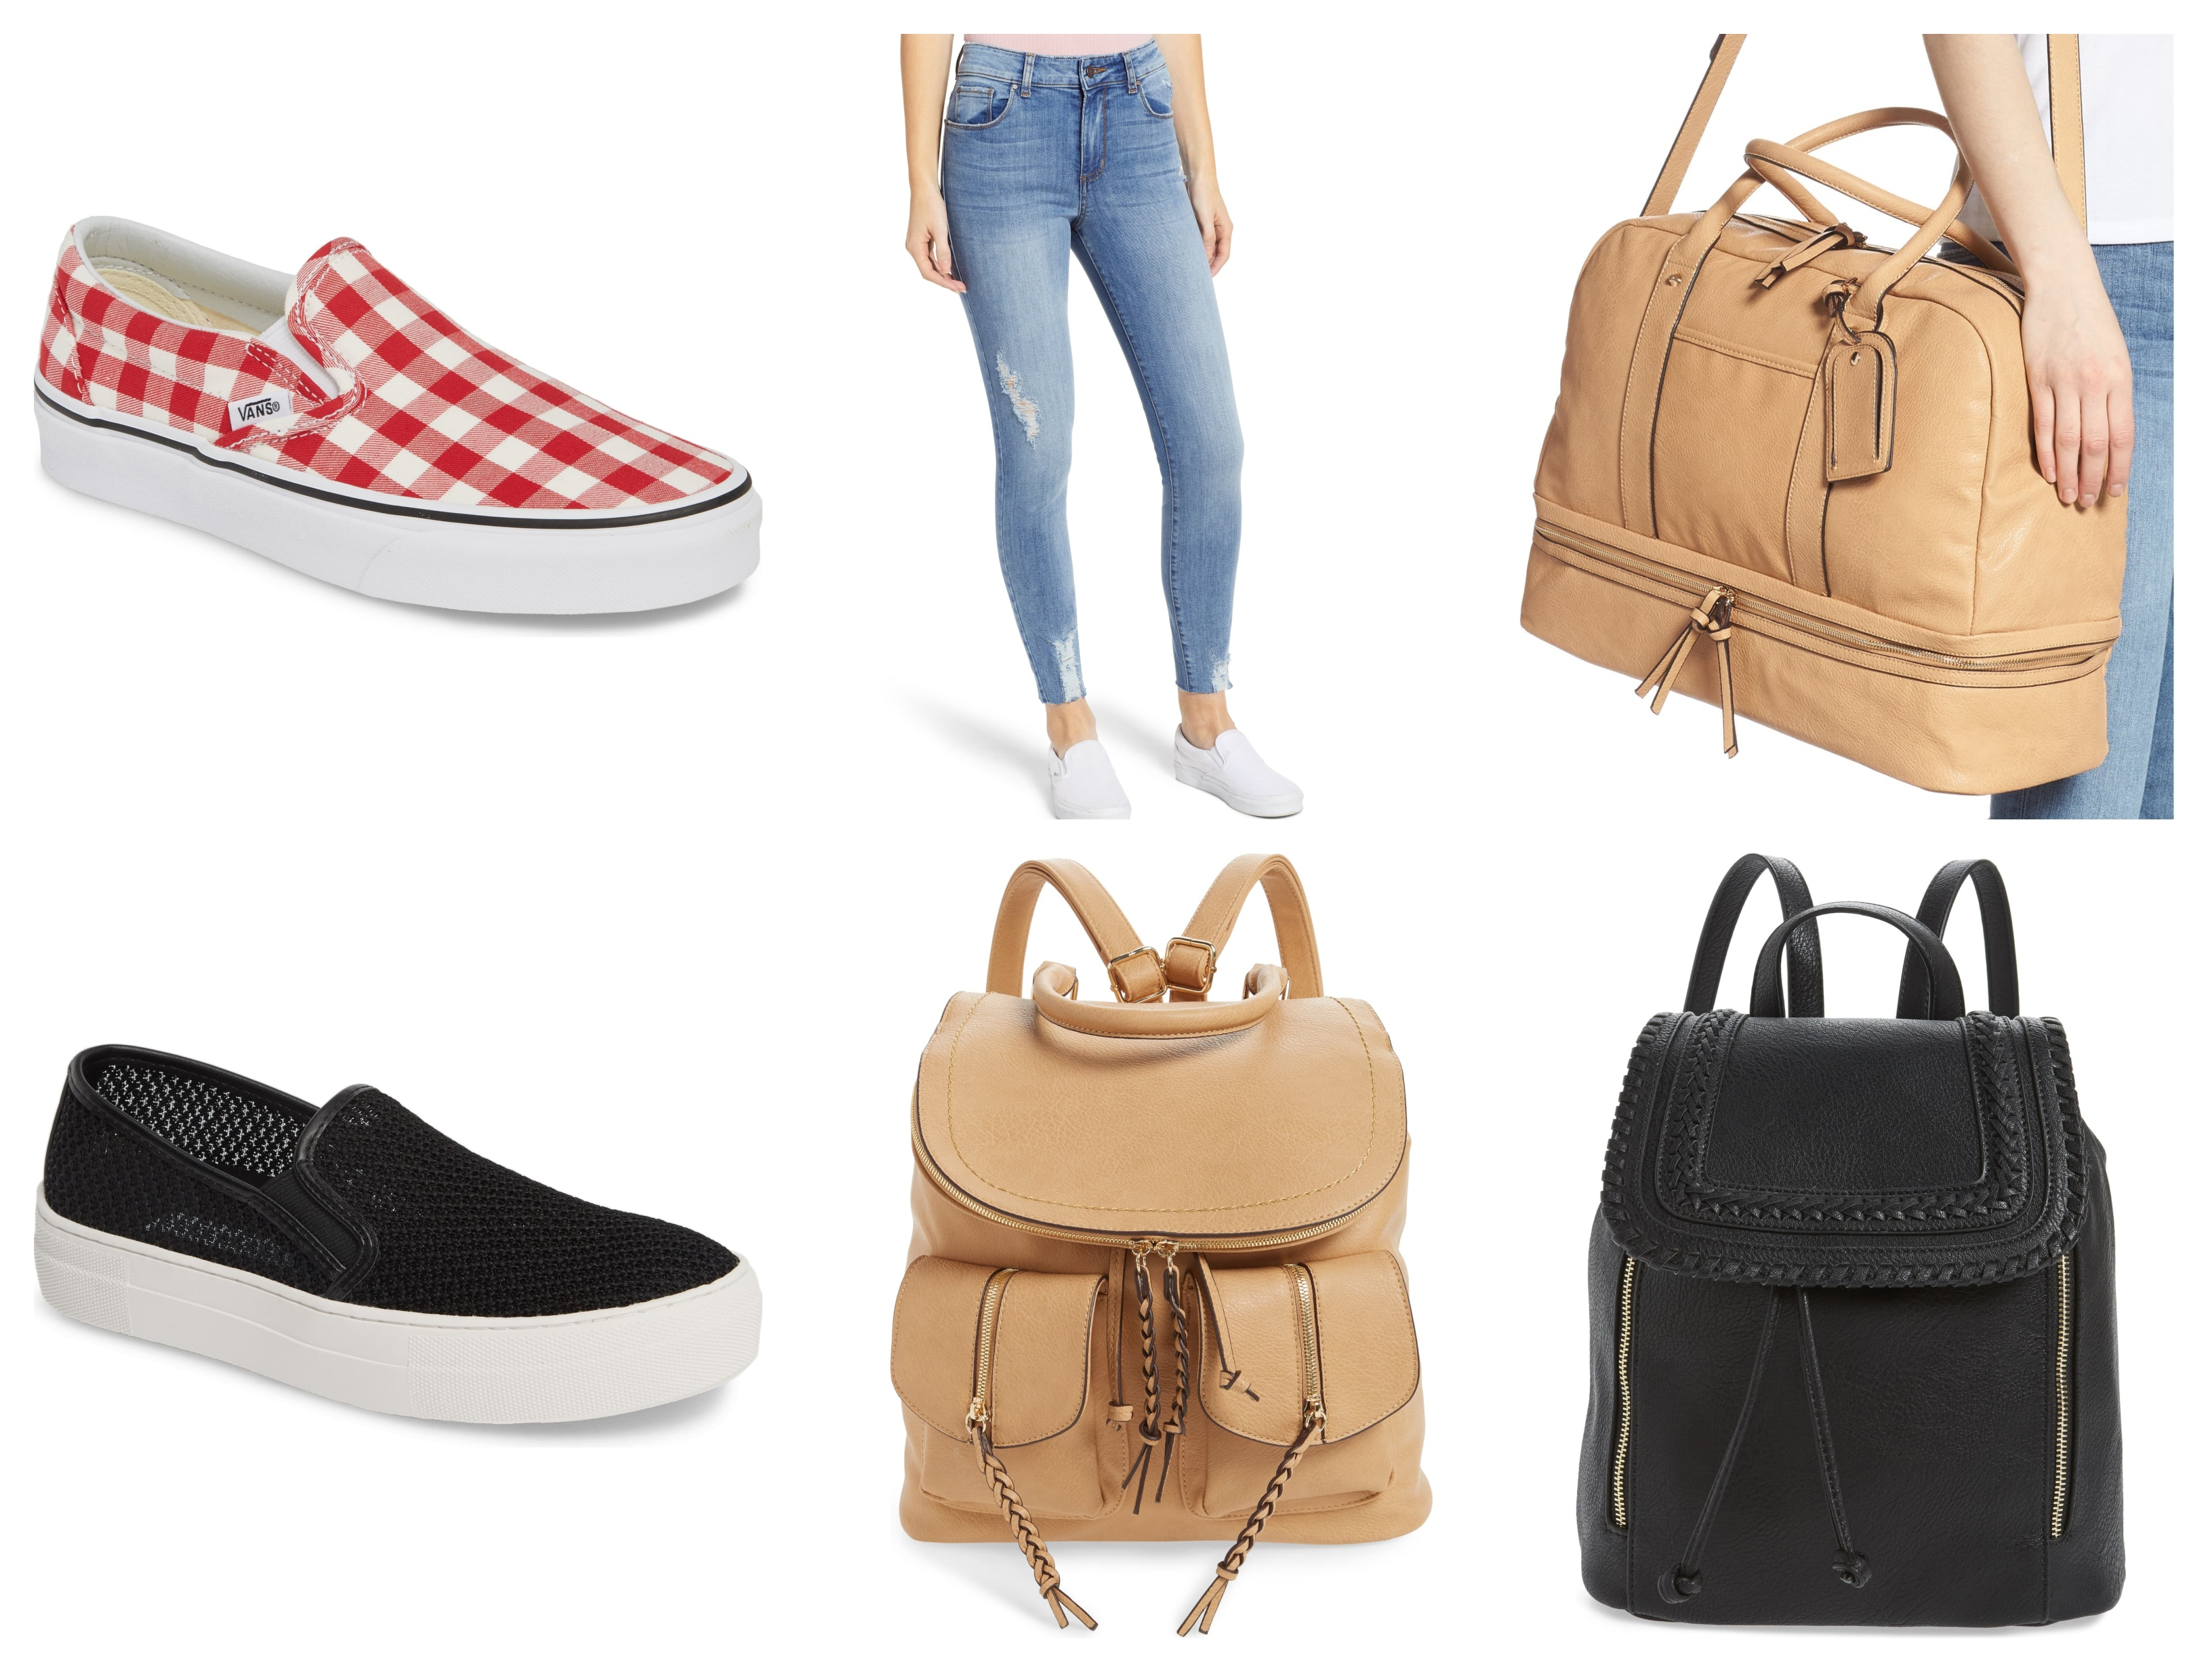 cacefc861fc39 Nordstrom: 40-50% Off Picks + Free Shipping! – Wear It For Less